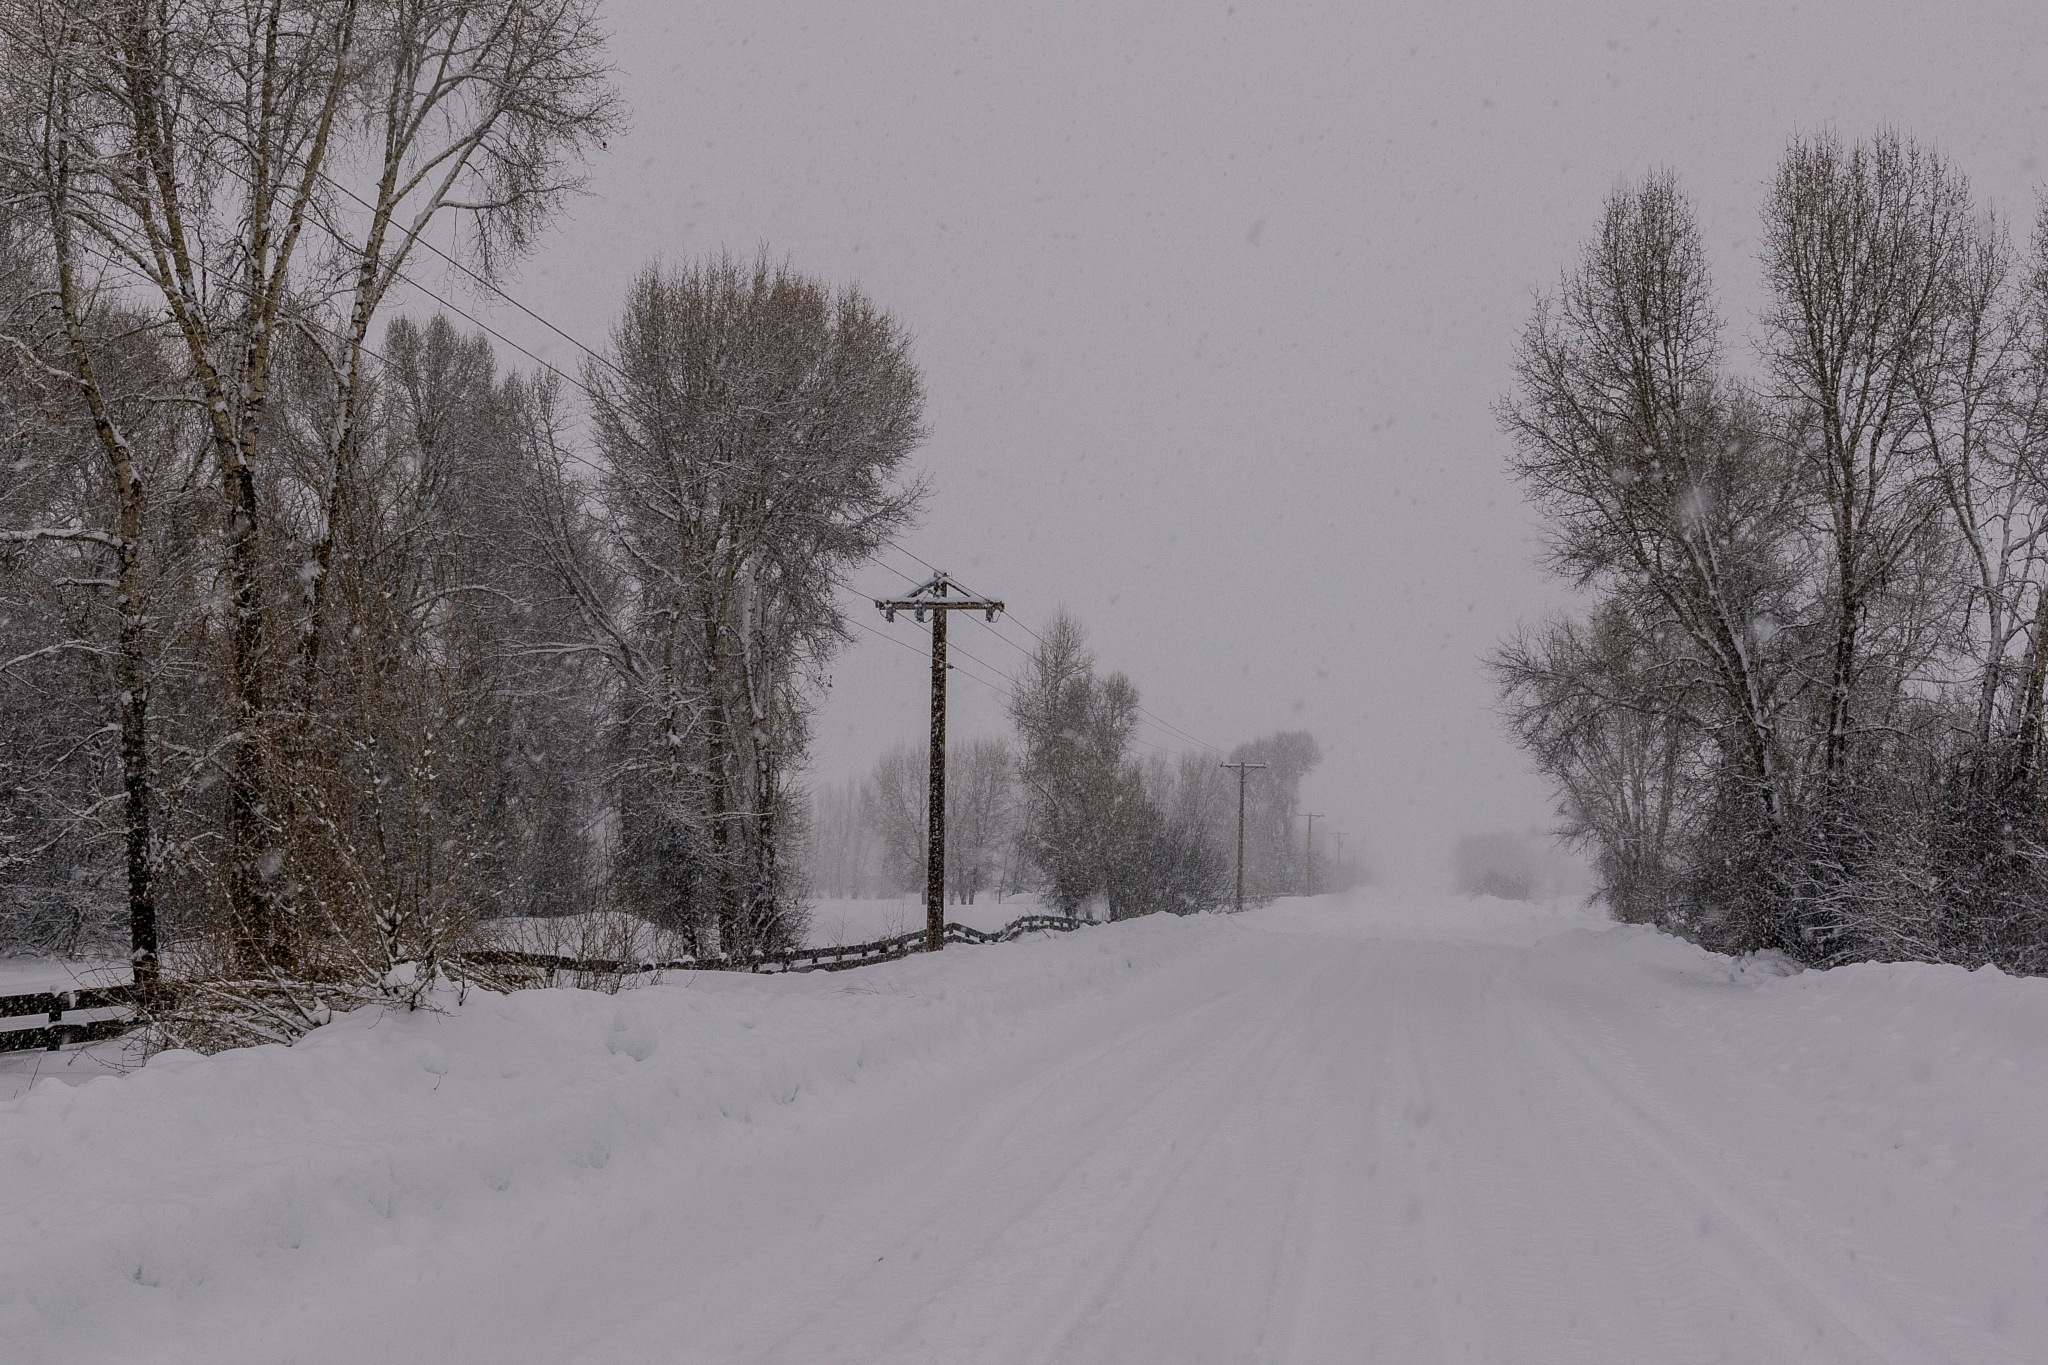 Snowy Road by drchad480